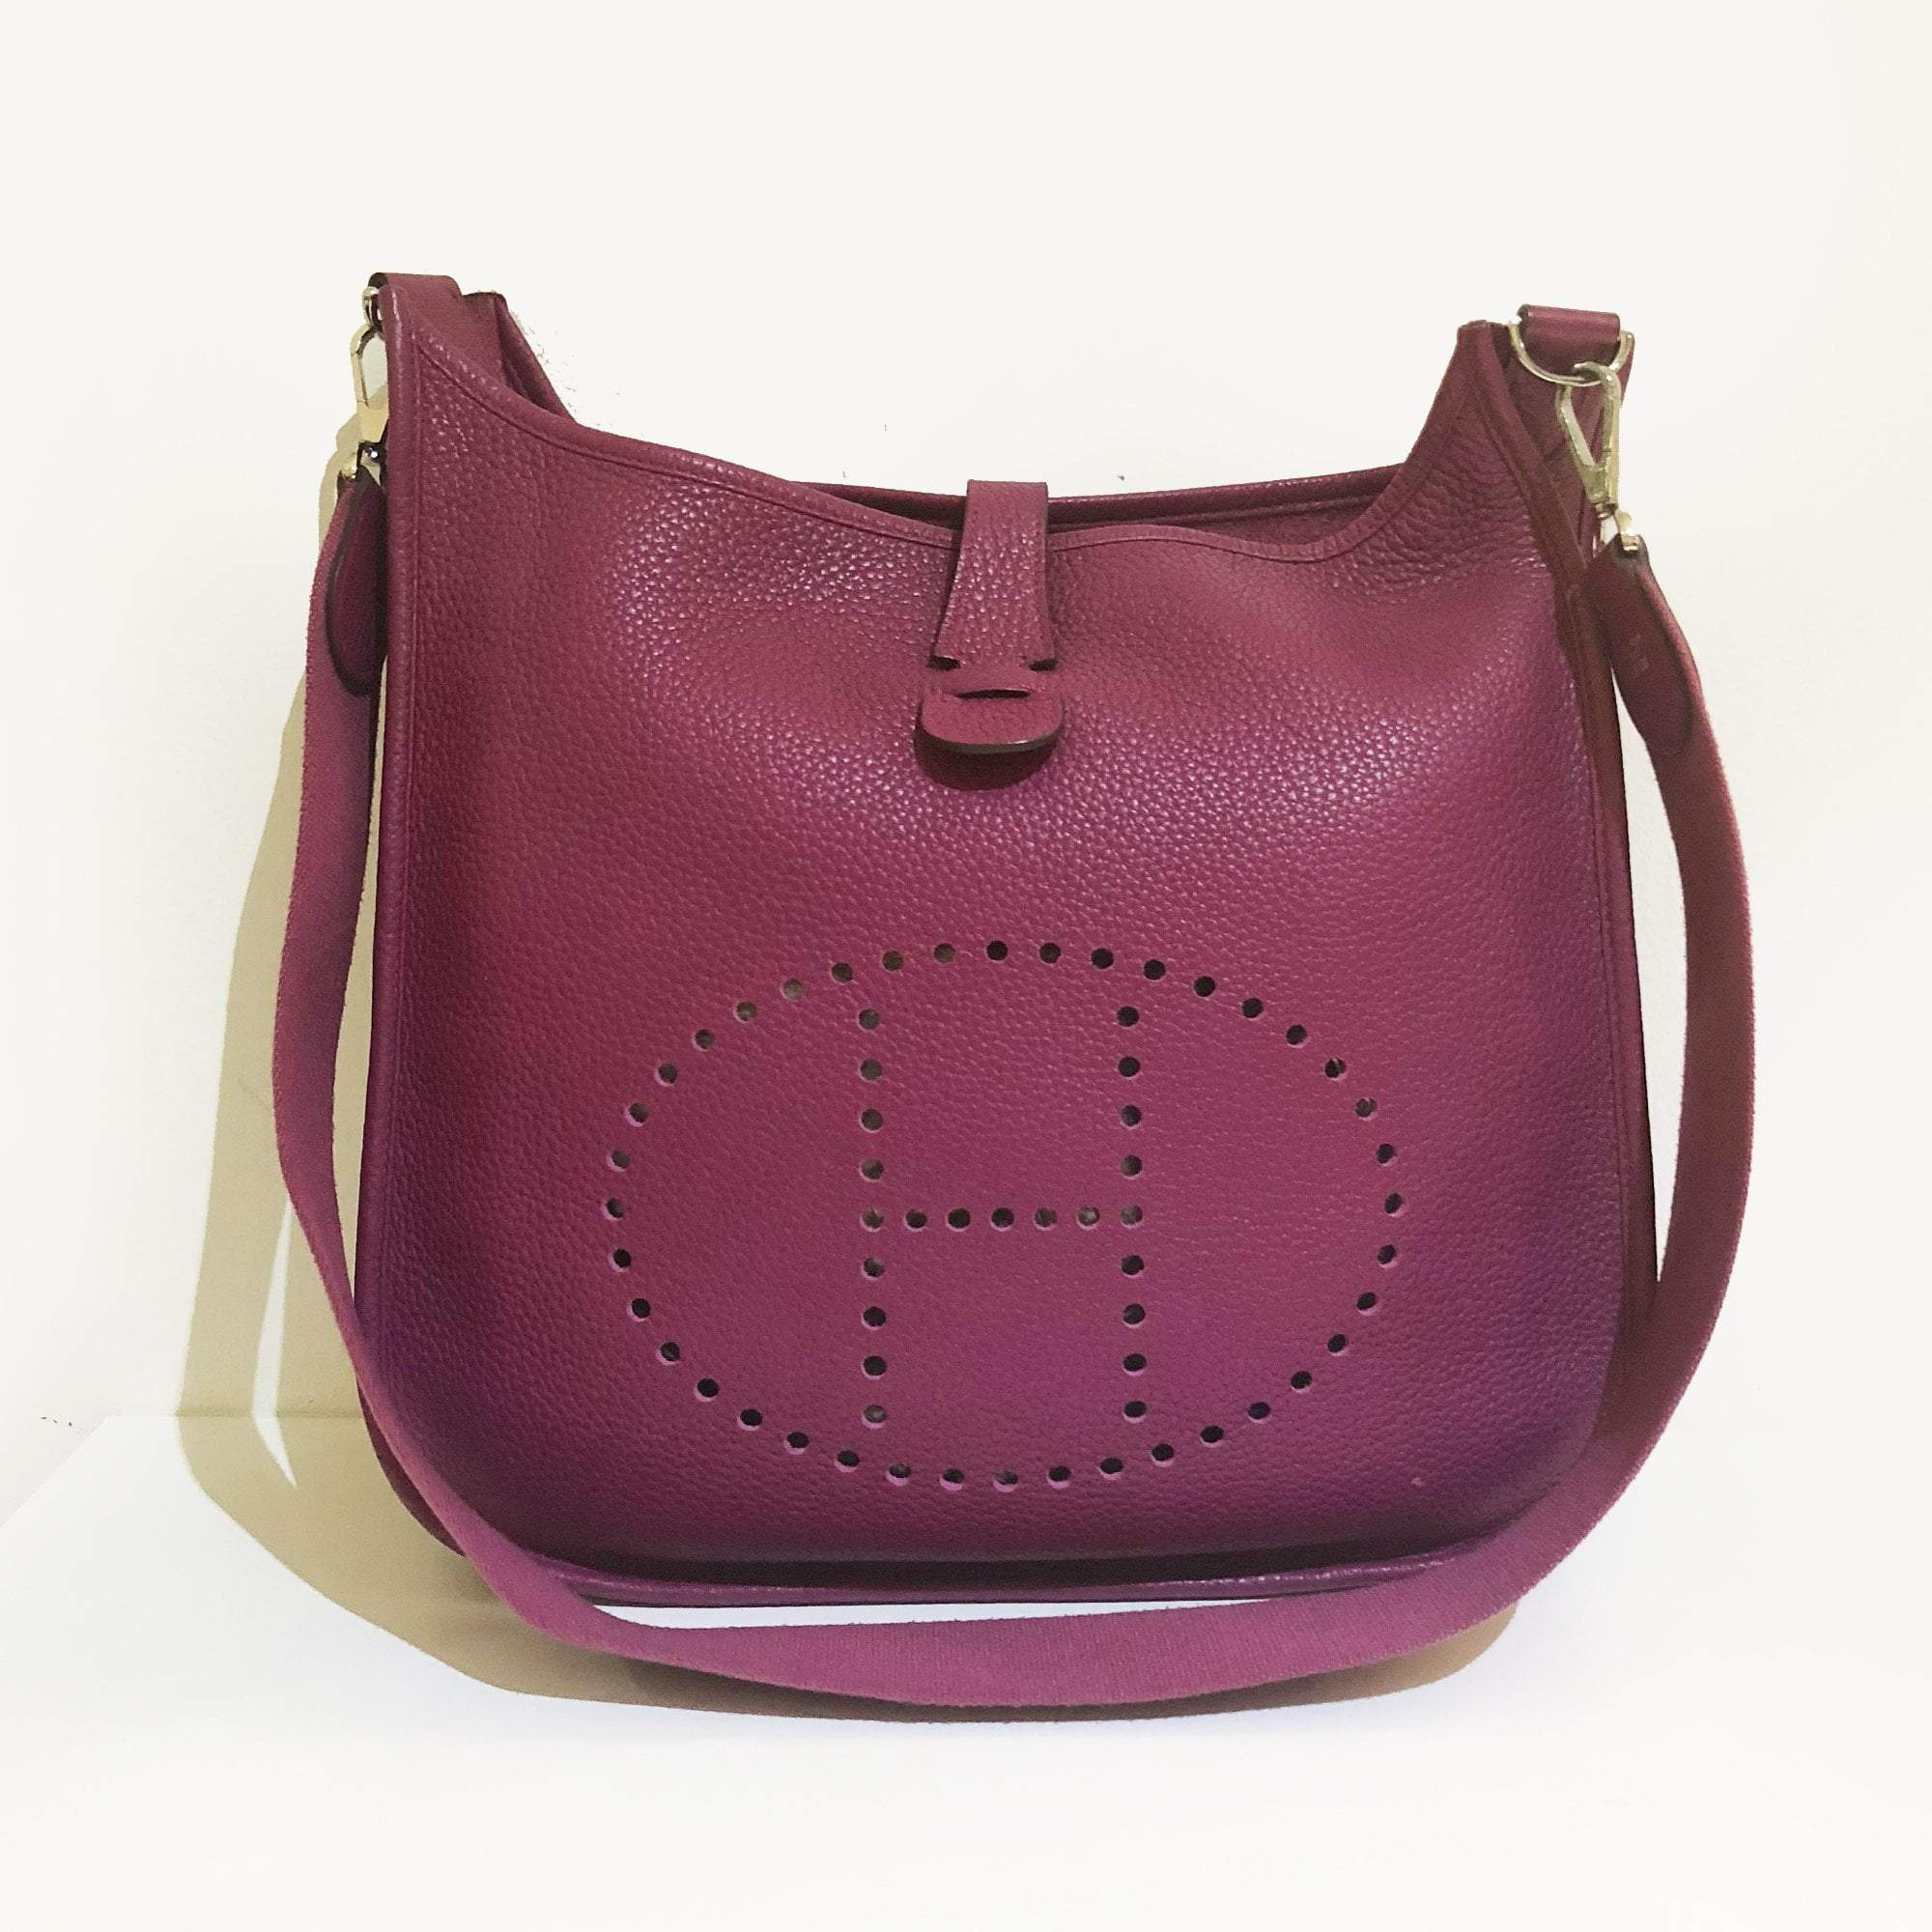 Hermes Clemence Evelyn Purple Bag